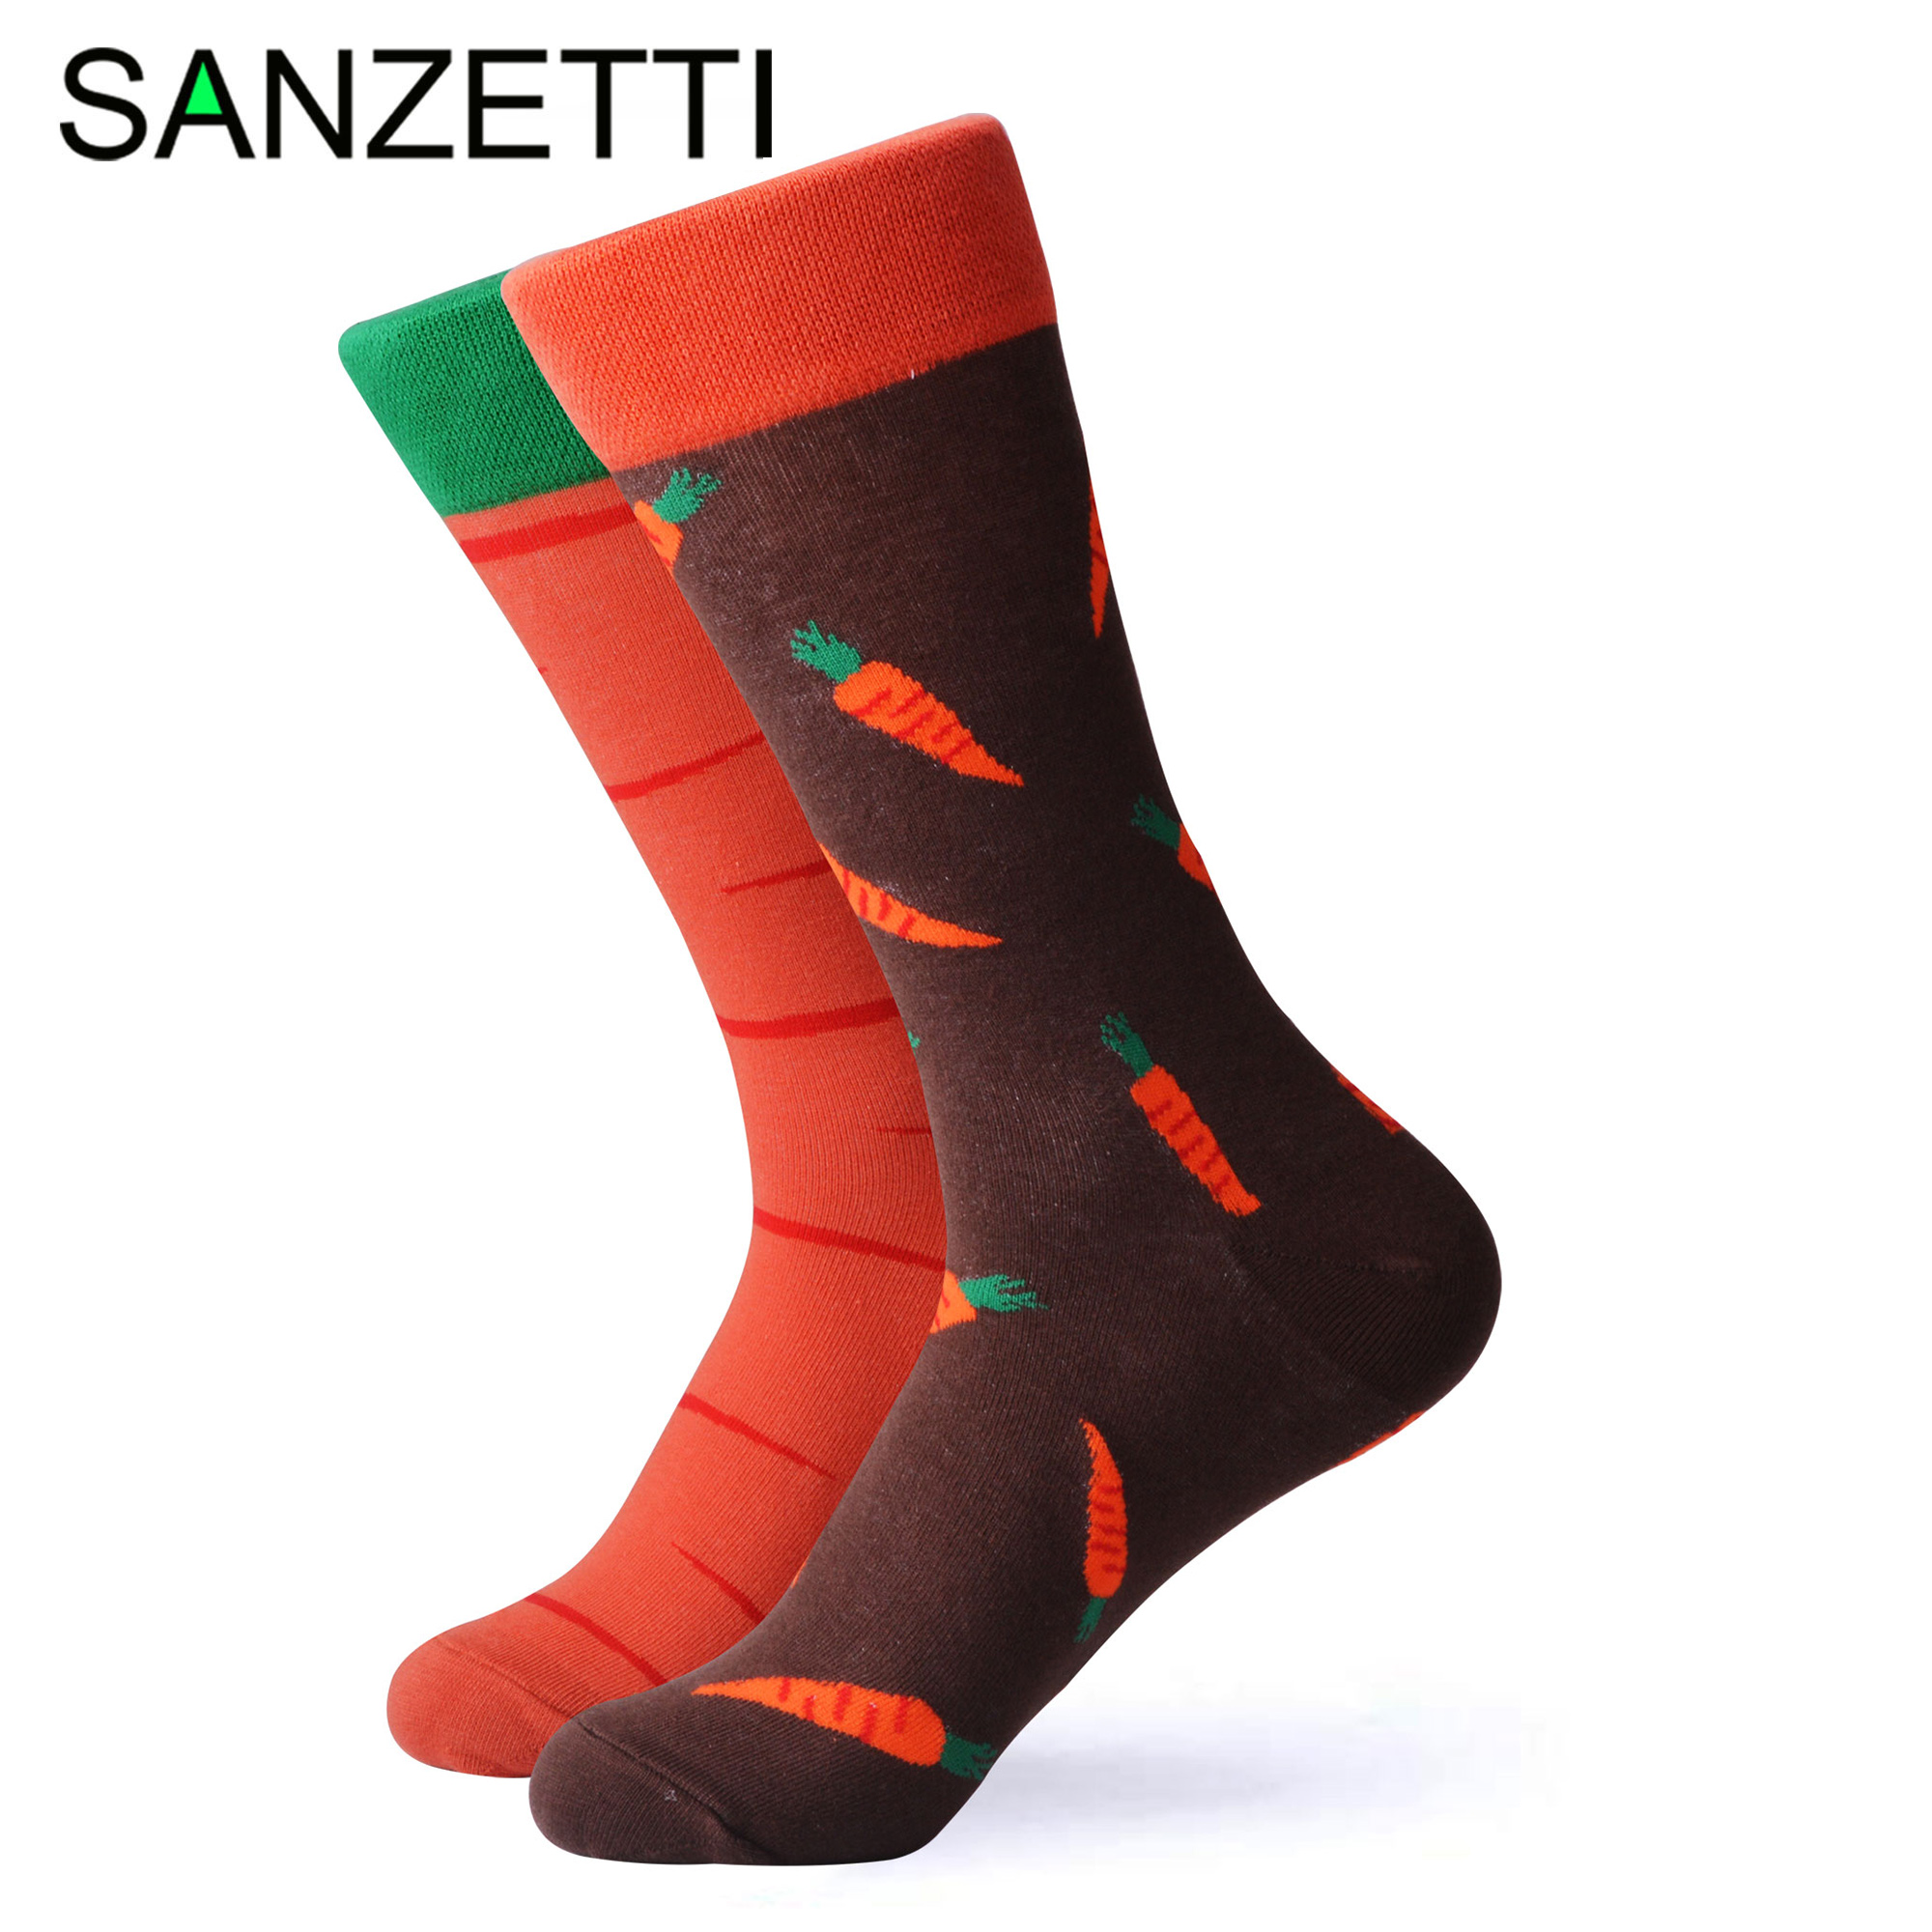 SANZETTI 1 Pair New Colorful Bright Women's Socks Novelty Cute Female Combed Cotton Party Wine Gifts Create Dress Happy Socks